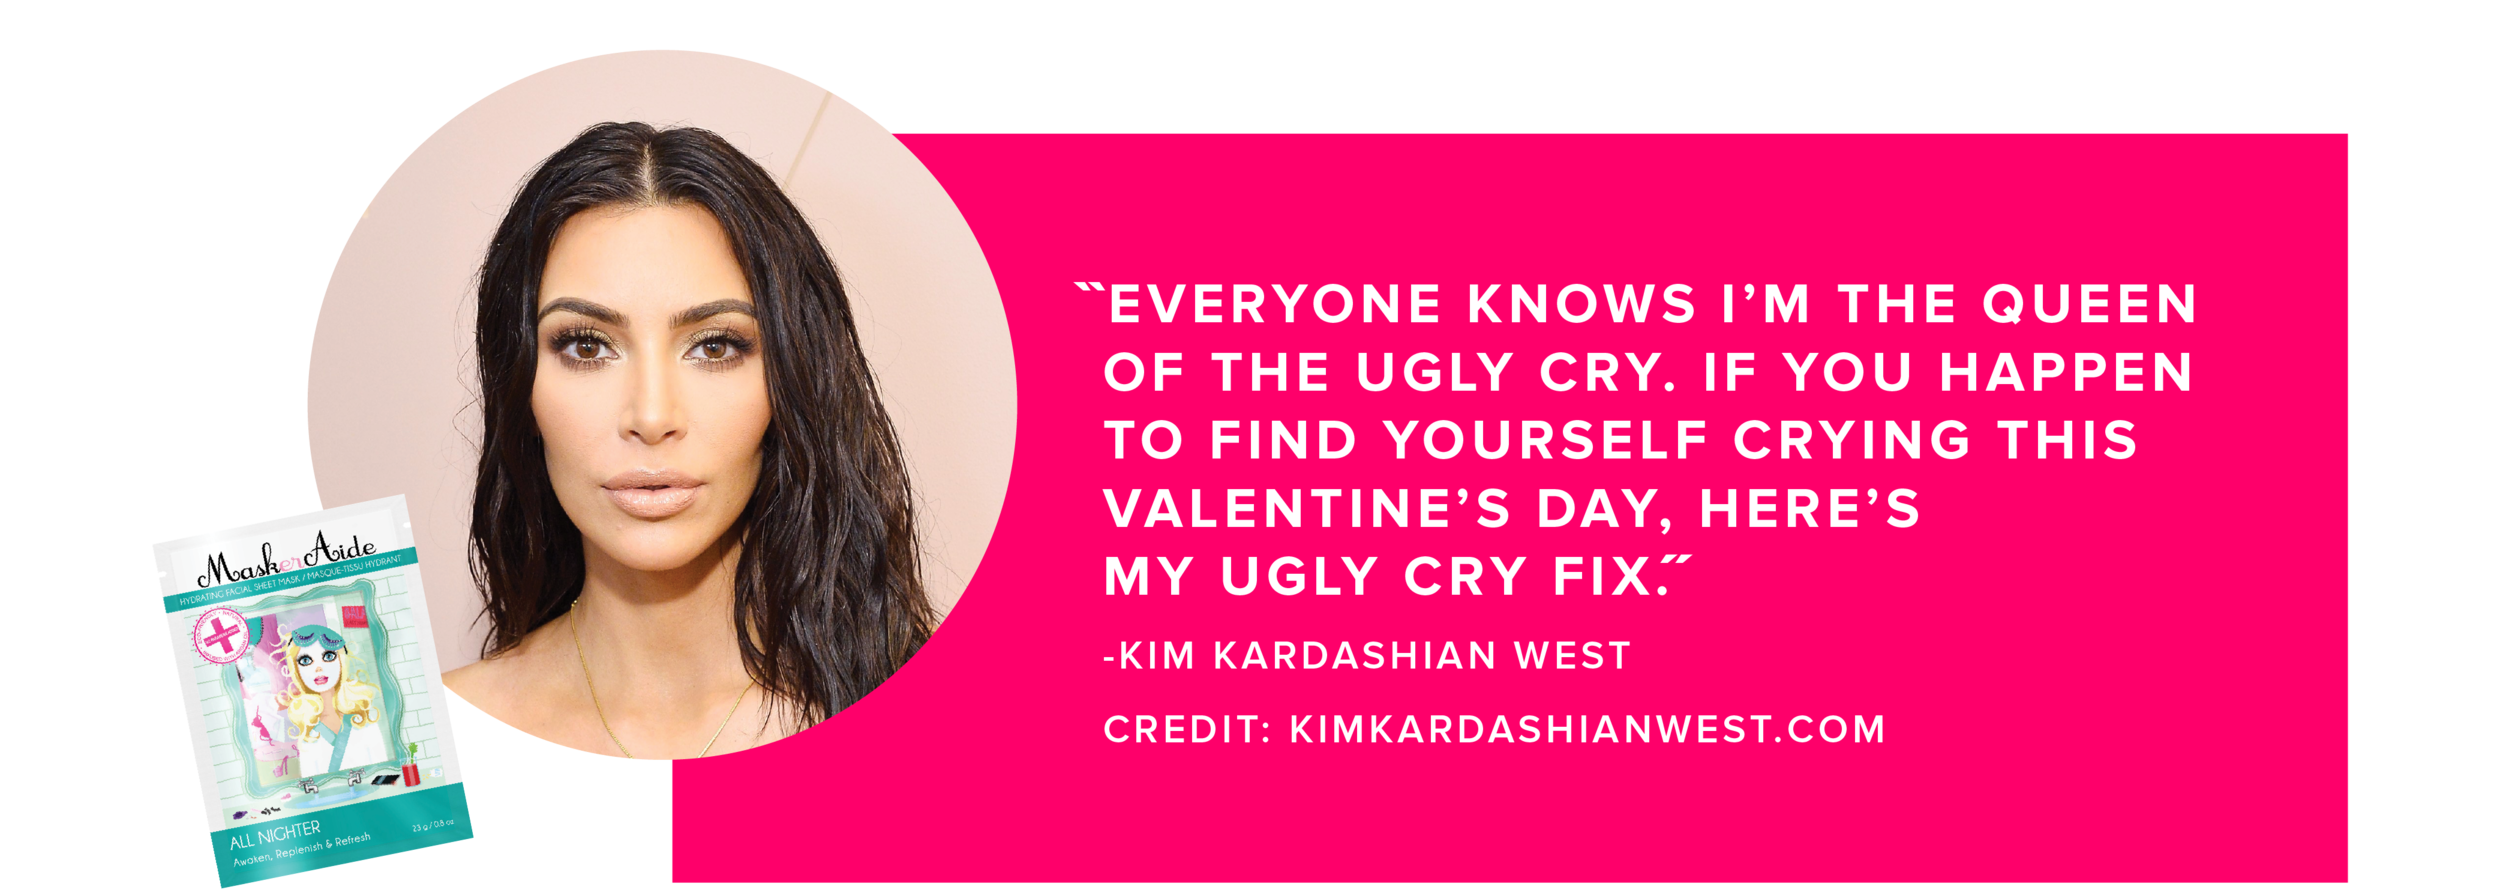 kimk-quote.png